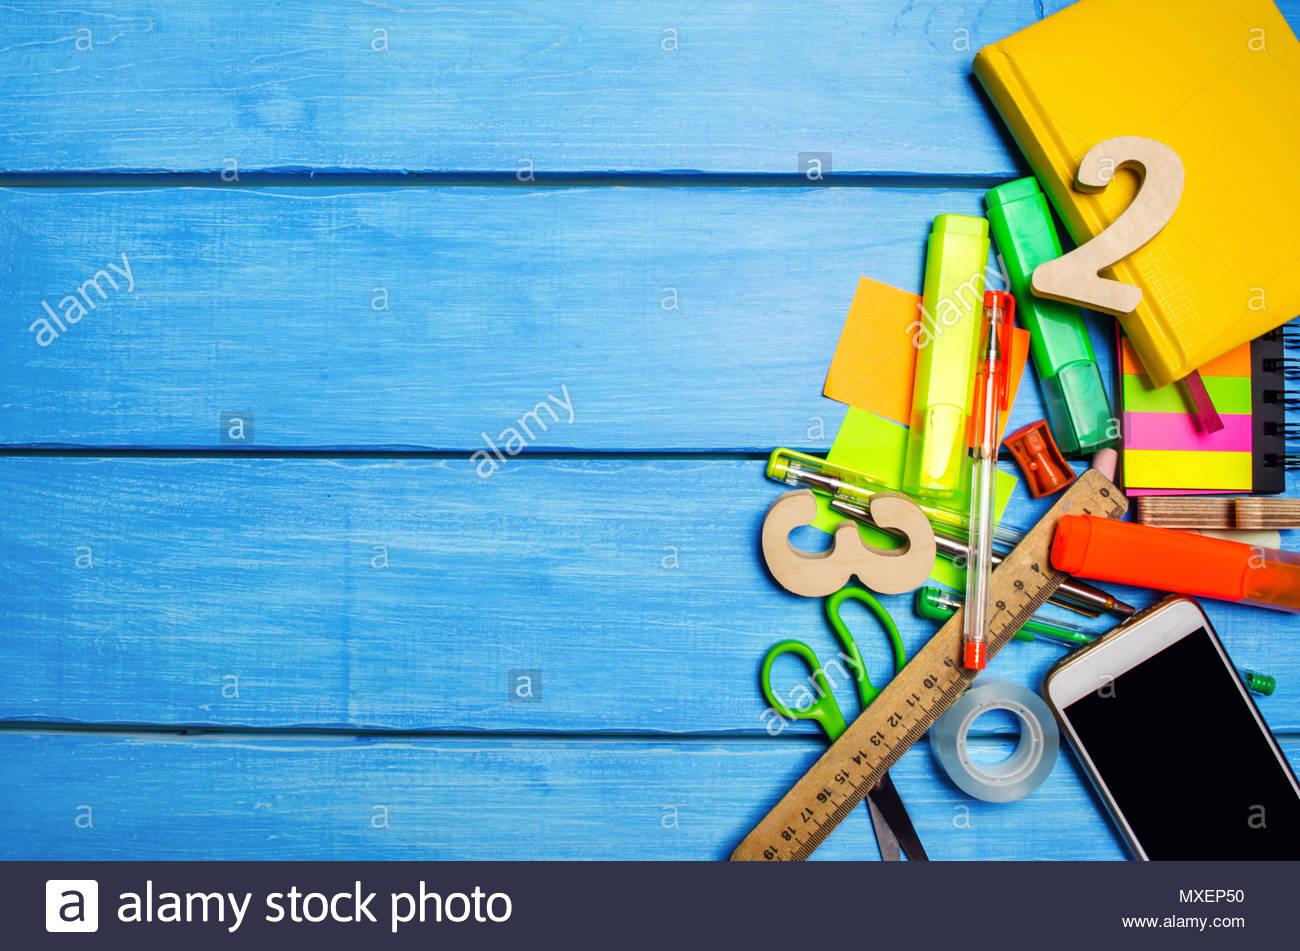 A pile of school supplies on a blue wooden table background The 1300x951